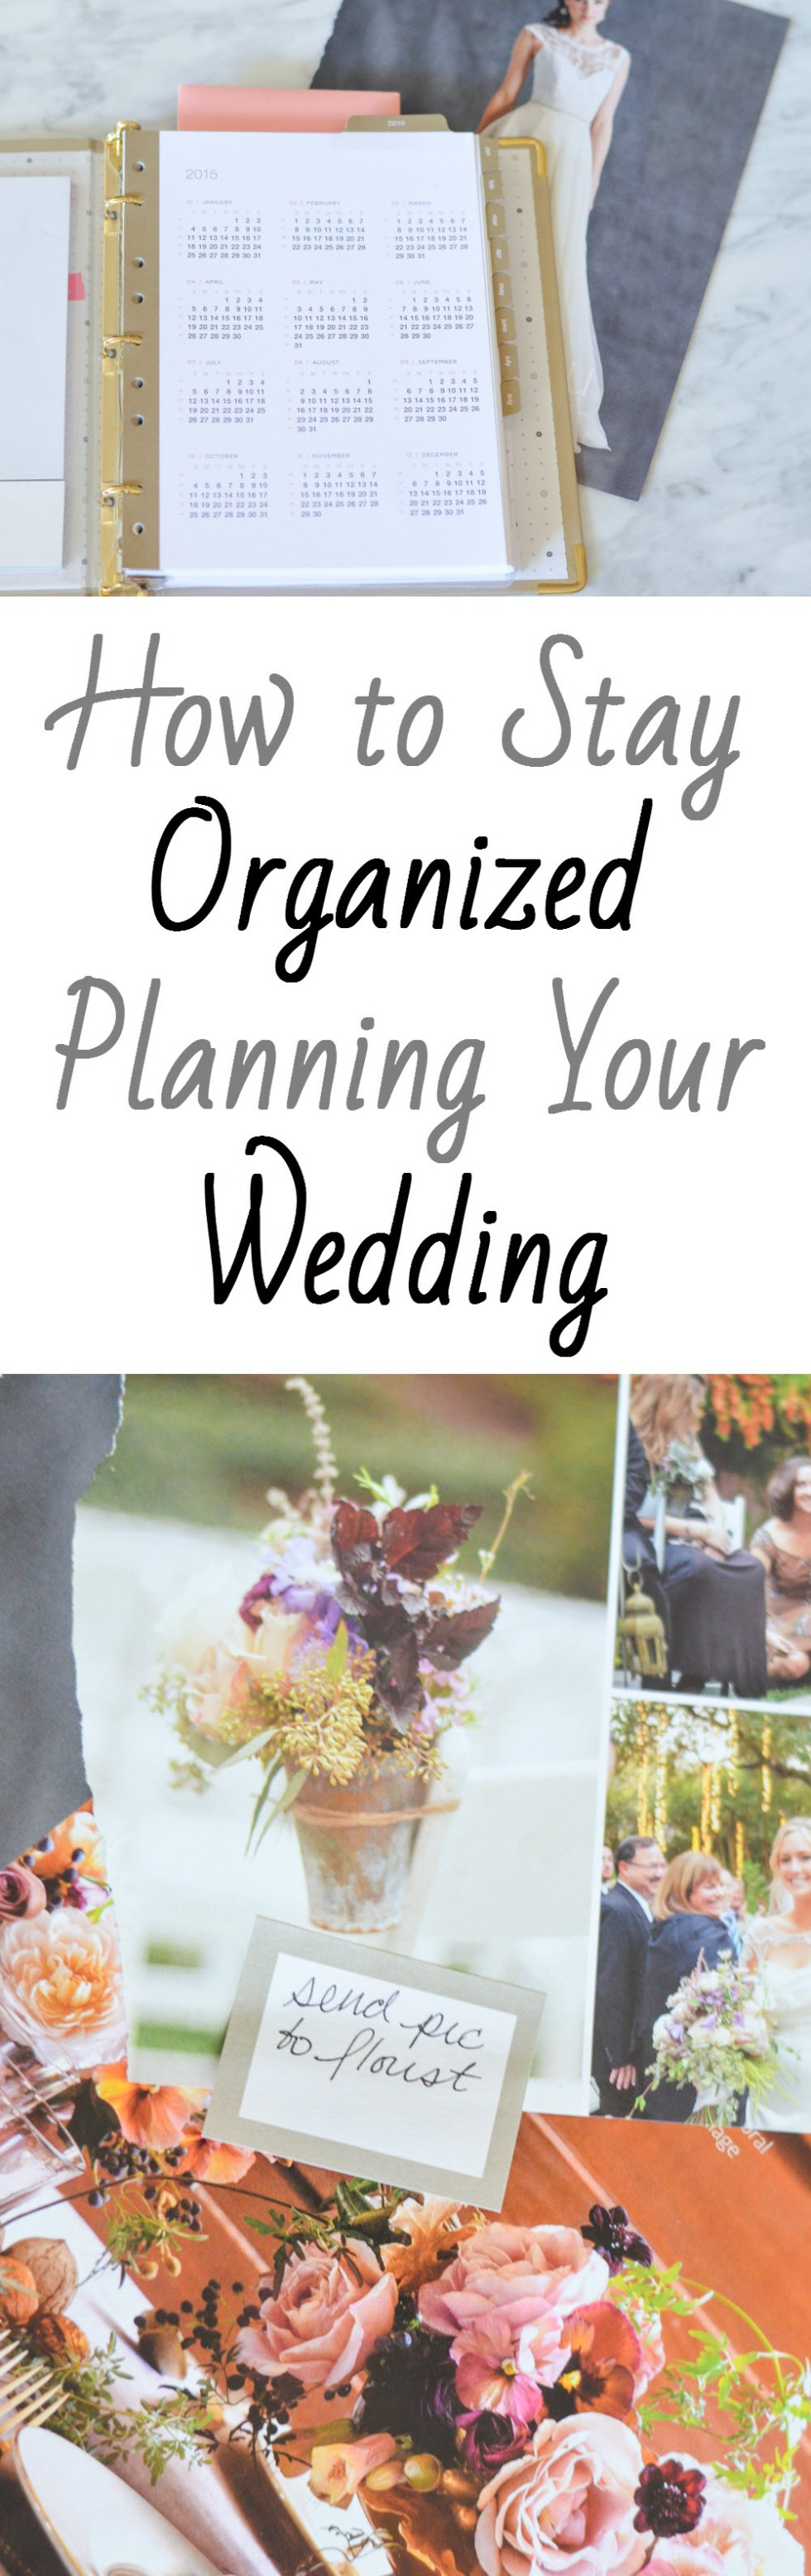 Tips + Tricks for How to Stay Organized Planning a Wedding